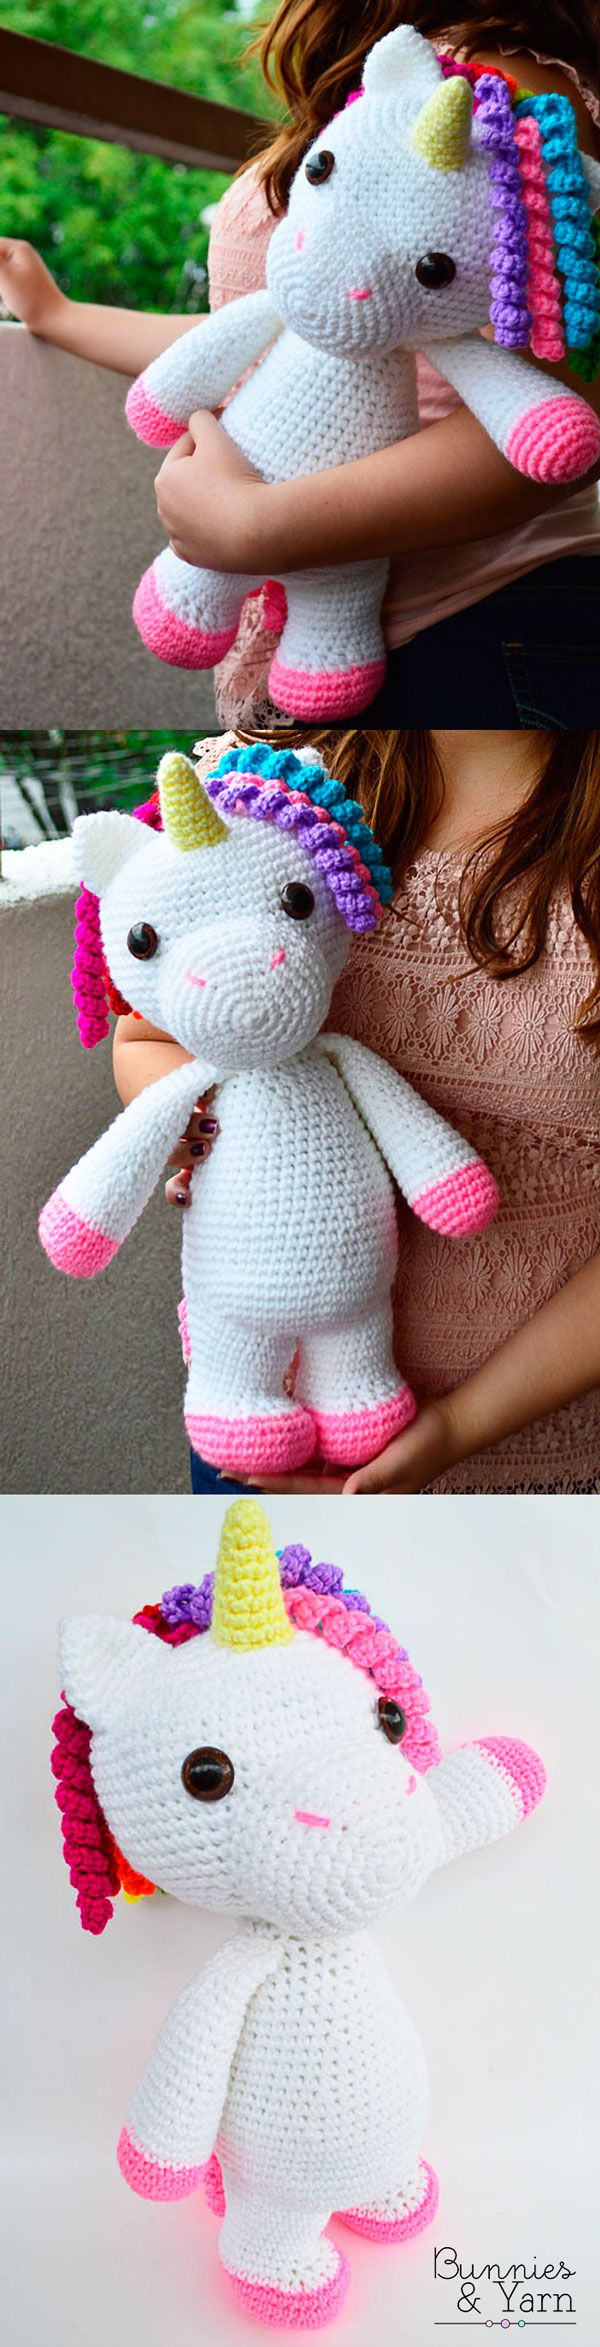 Crochet Pattern - Mimi the Friendly Unicorn - Amigurumi. This is perfect for unicorn lovers of all ages!